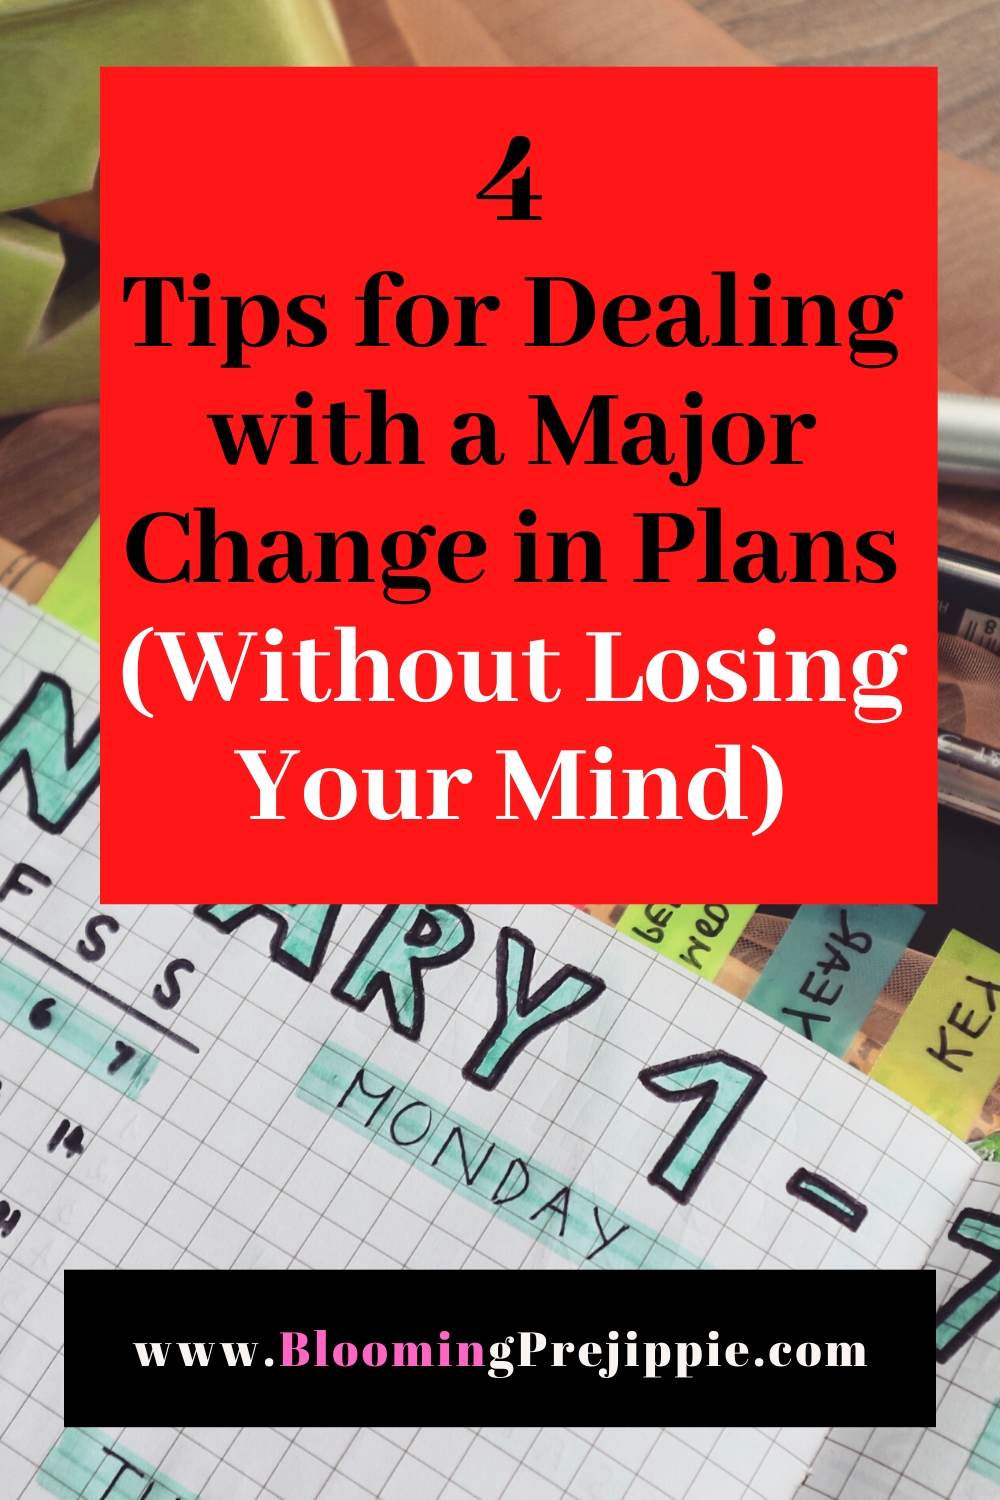 4 Tips for Dealing with a Major Change in Plans --Blooming Prejippie